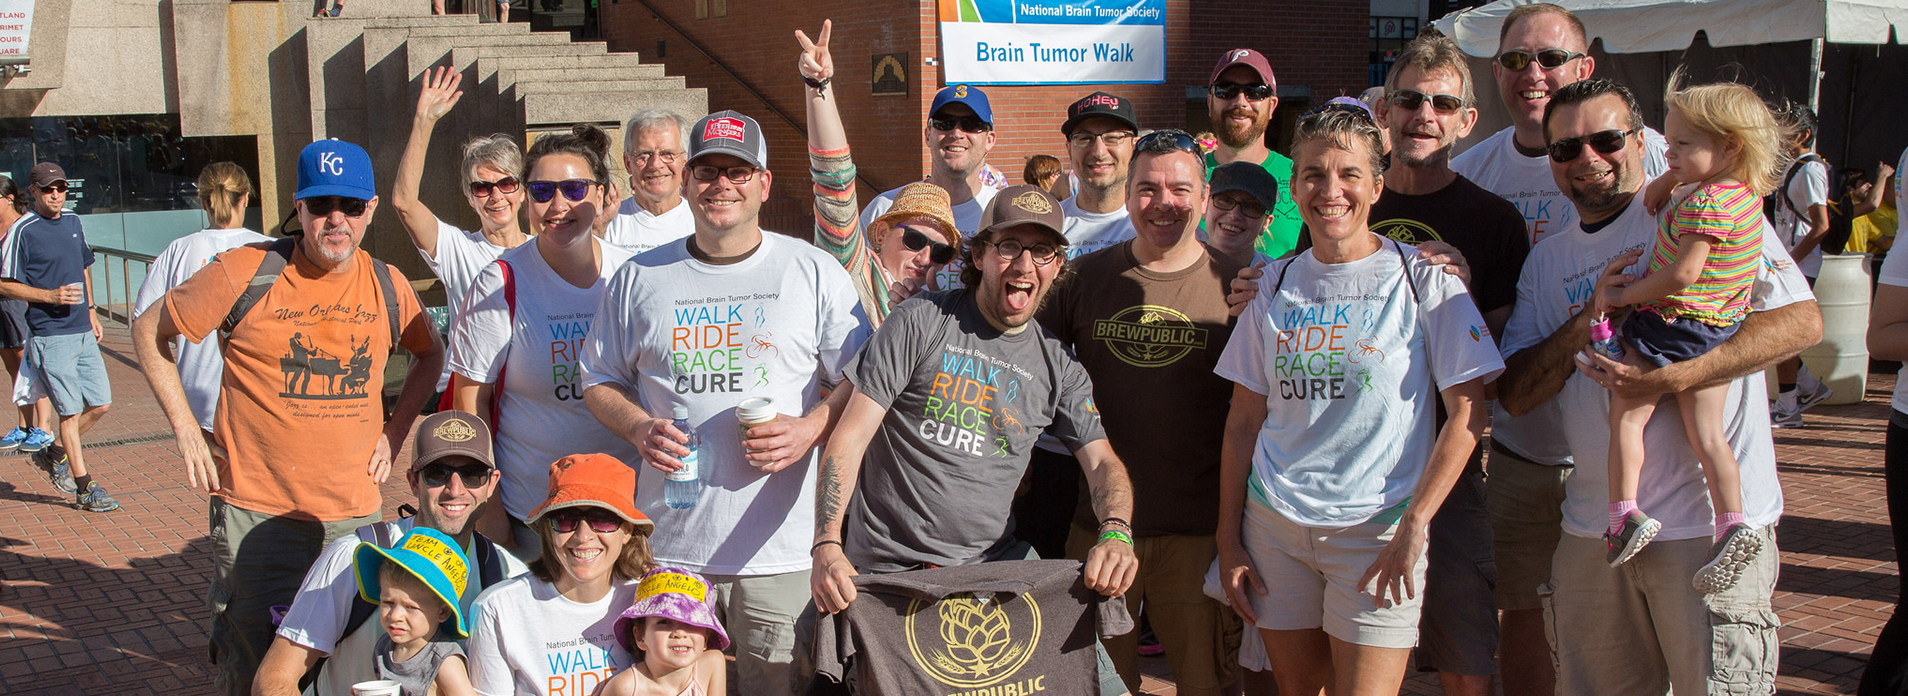 Team Brewpublic at the 2015 National Brain Tumor Society Portland Walk. (image courtesy of the Portland chapter of the NBTS)